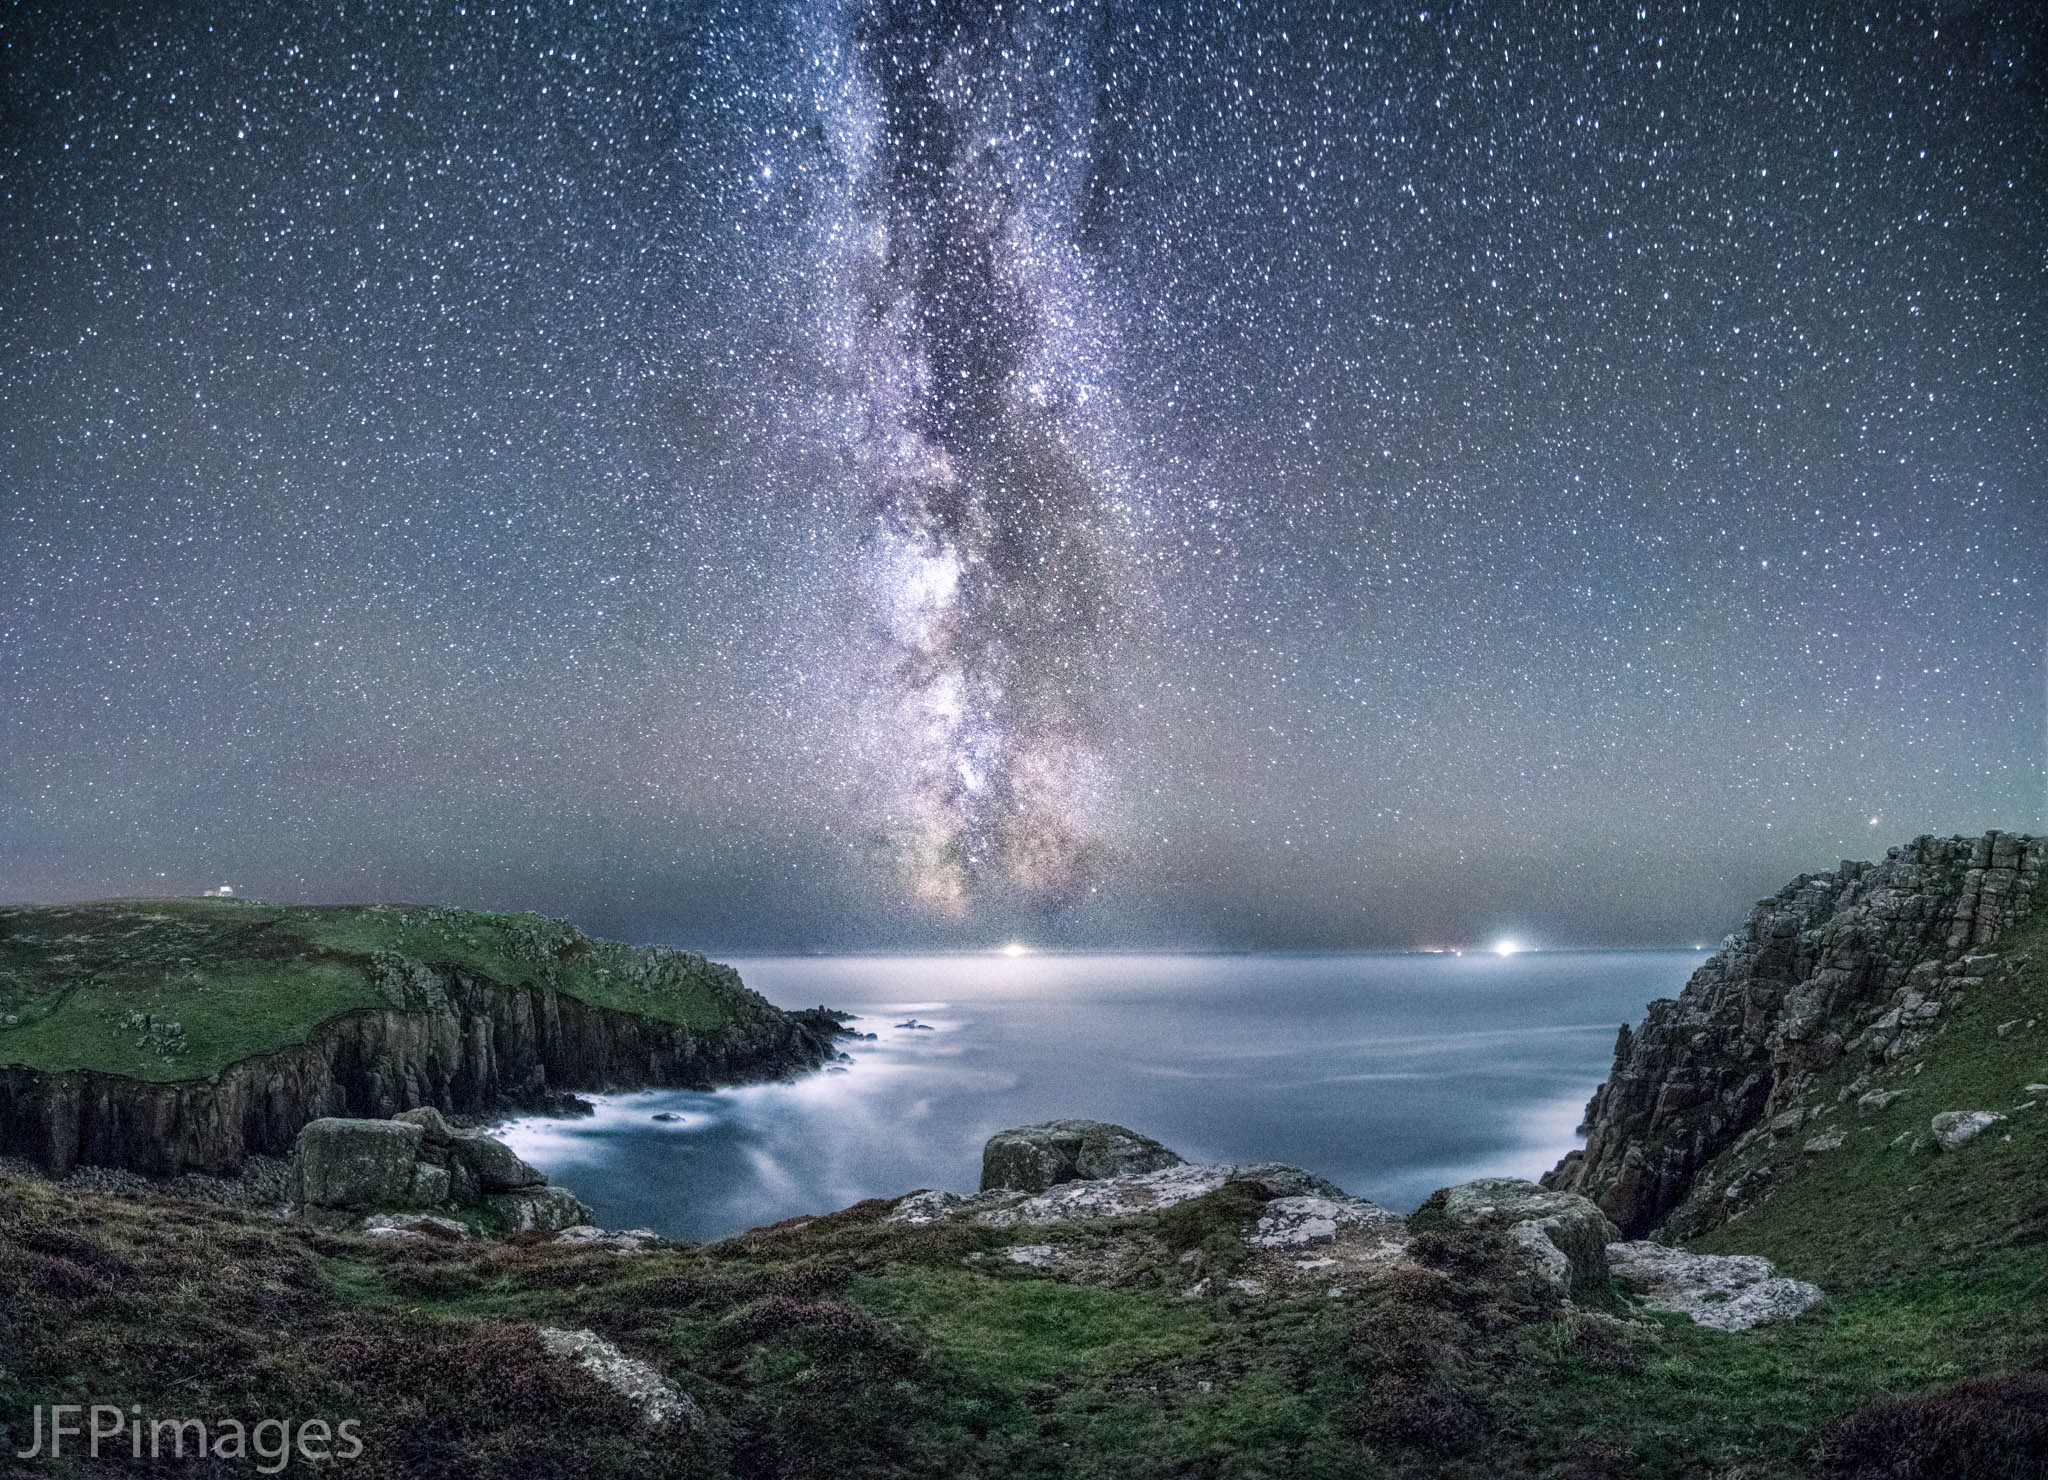 The Milky Way above Gwenap Head